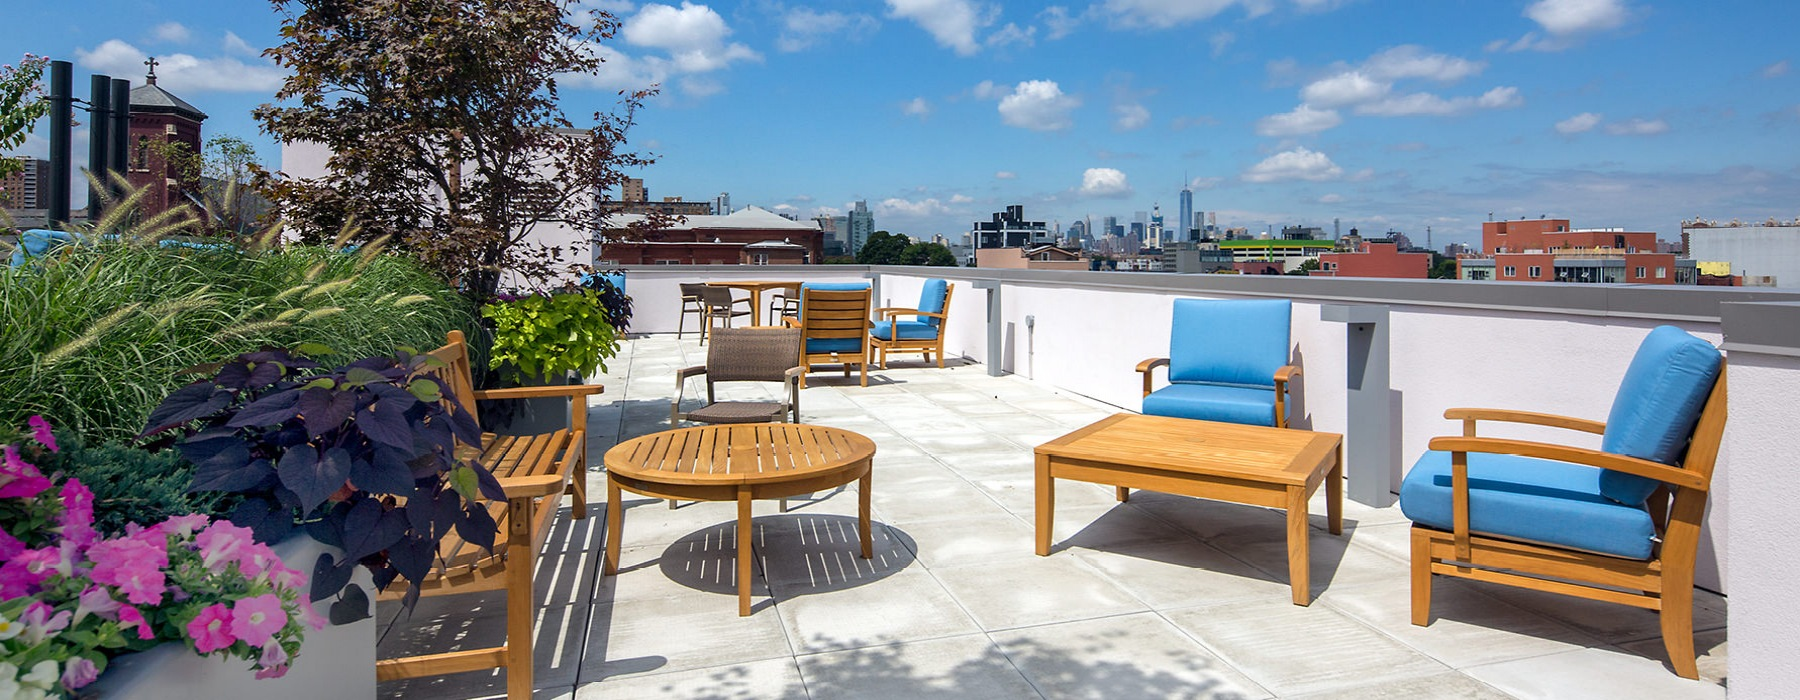 Rooftop lounge with Adirondack chairs and tables